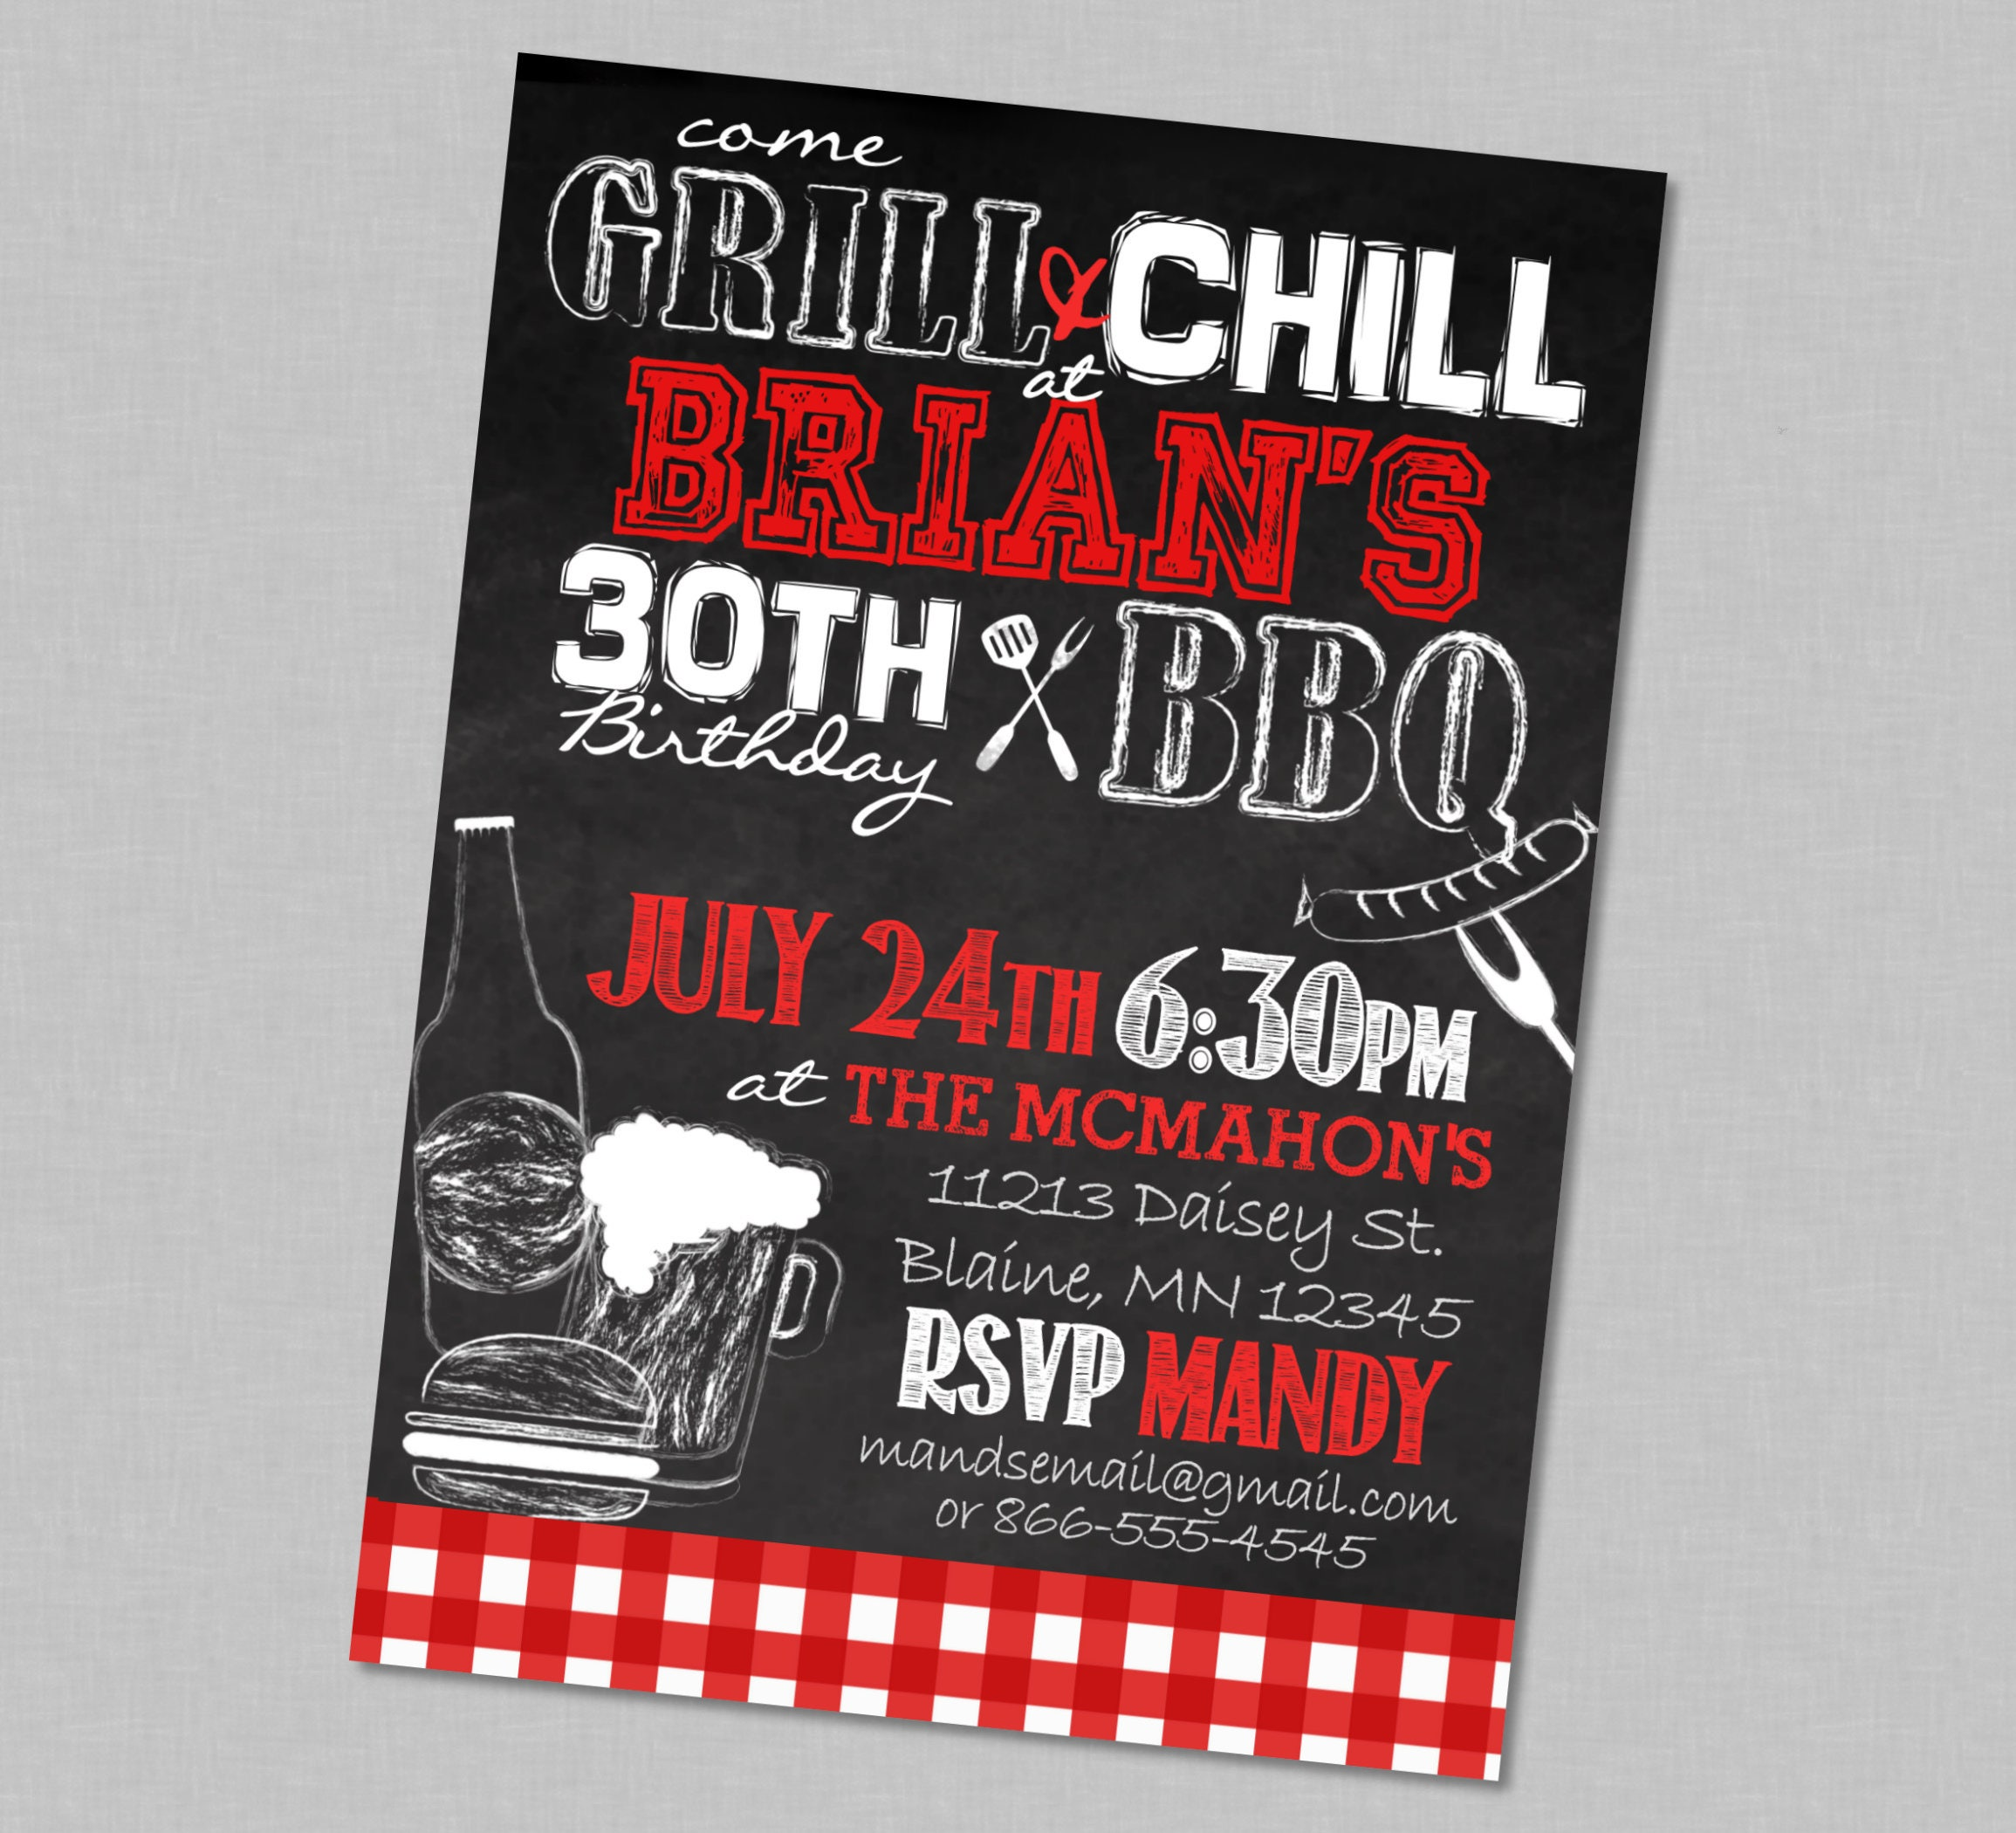 Adult Birthday BBQ Chill & Grill Party Invitation Backyard | Etsy